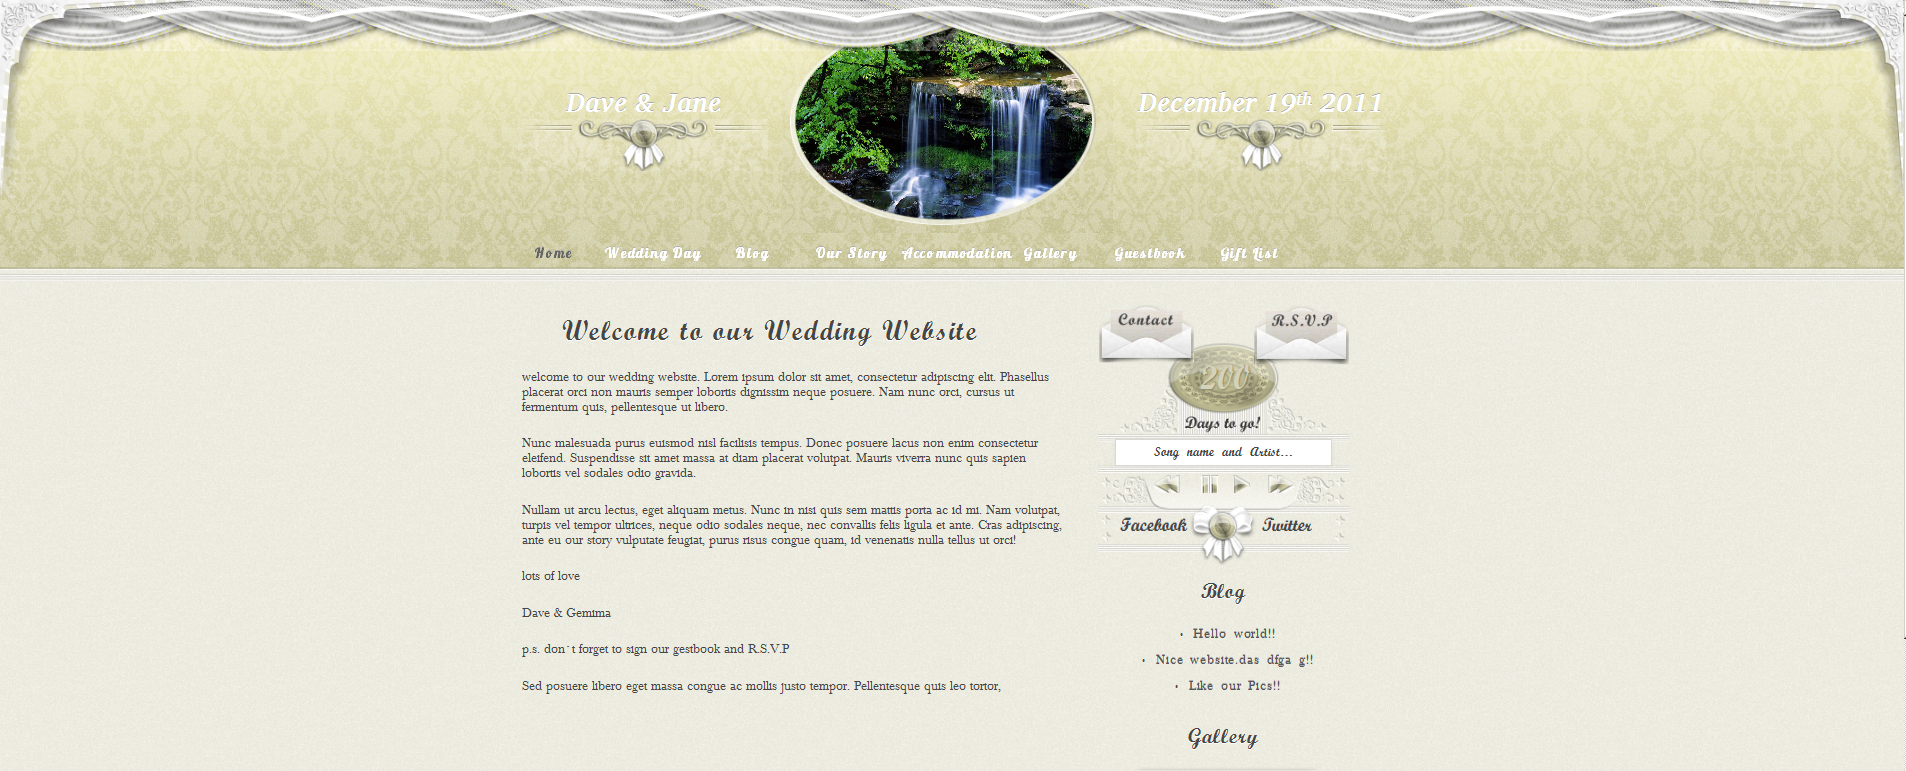 personal wedding website screenshot 11